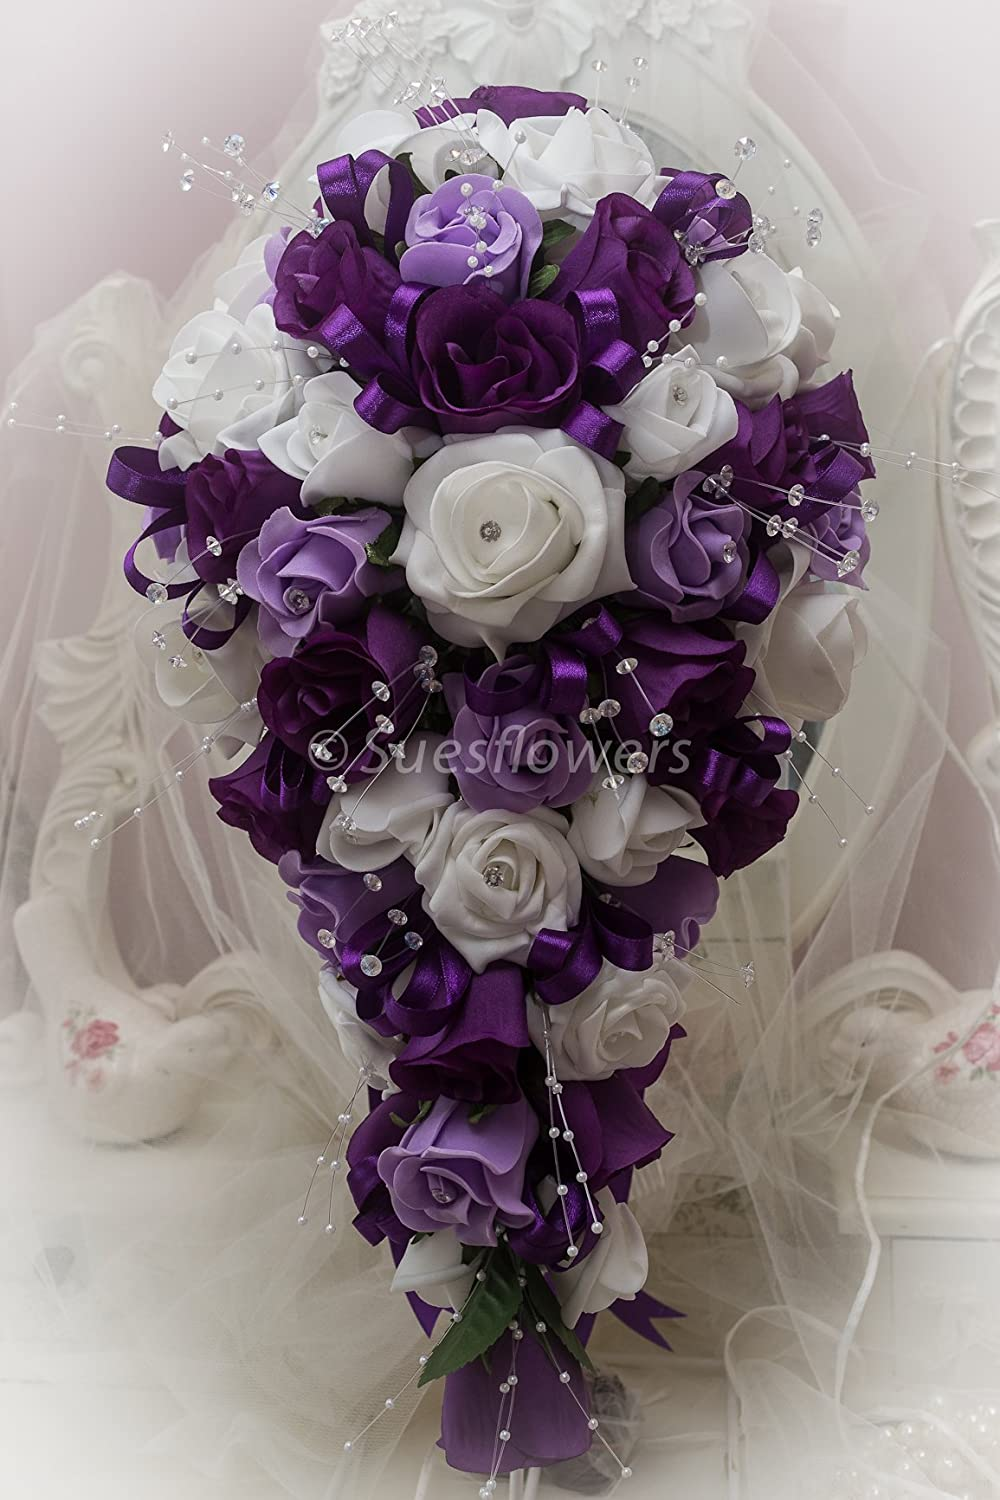 WEDDING FLOWERS SET OF 6 LUXURY DOUBLE BUTTONHOLES IN CADBURYS PURPLE AND WHITE